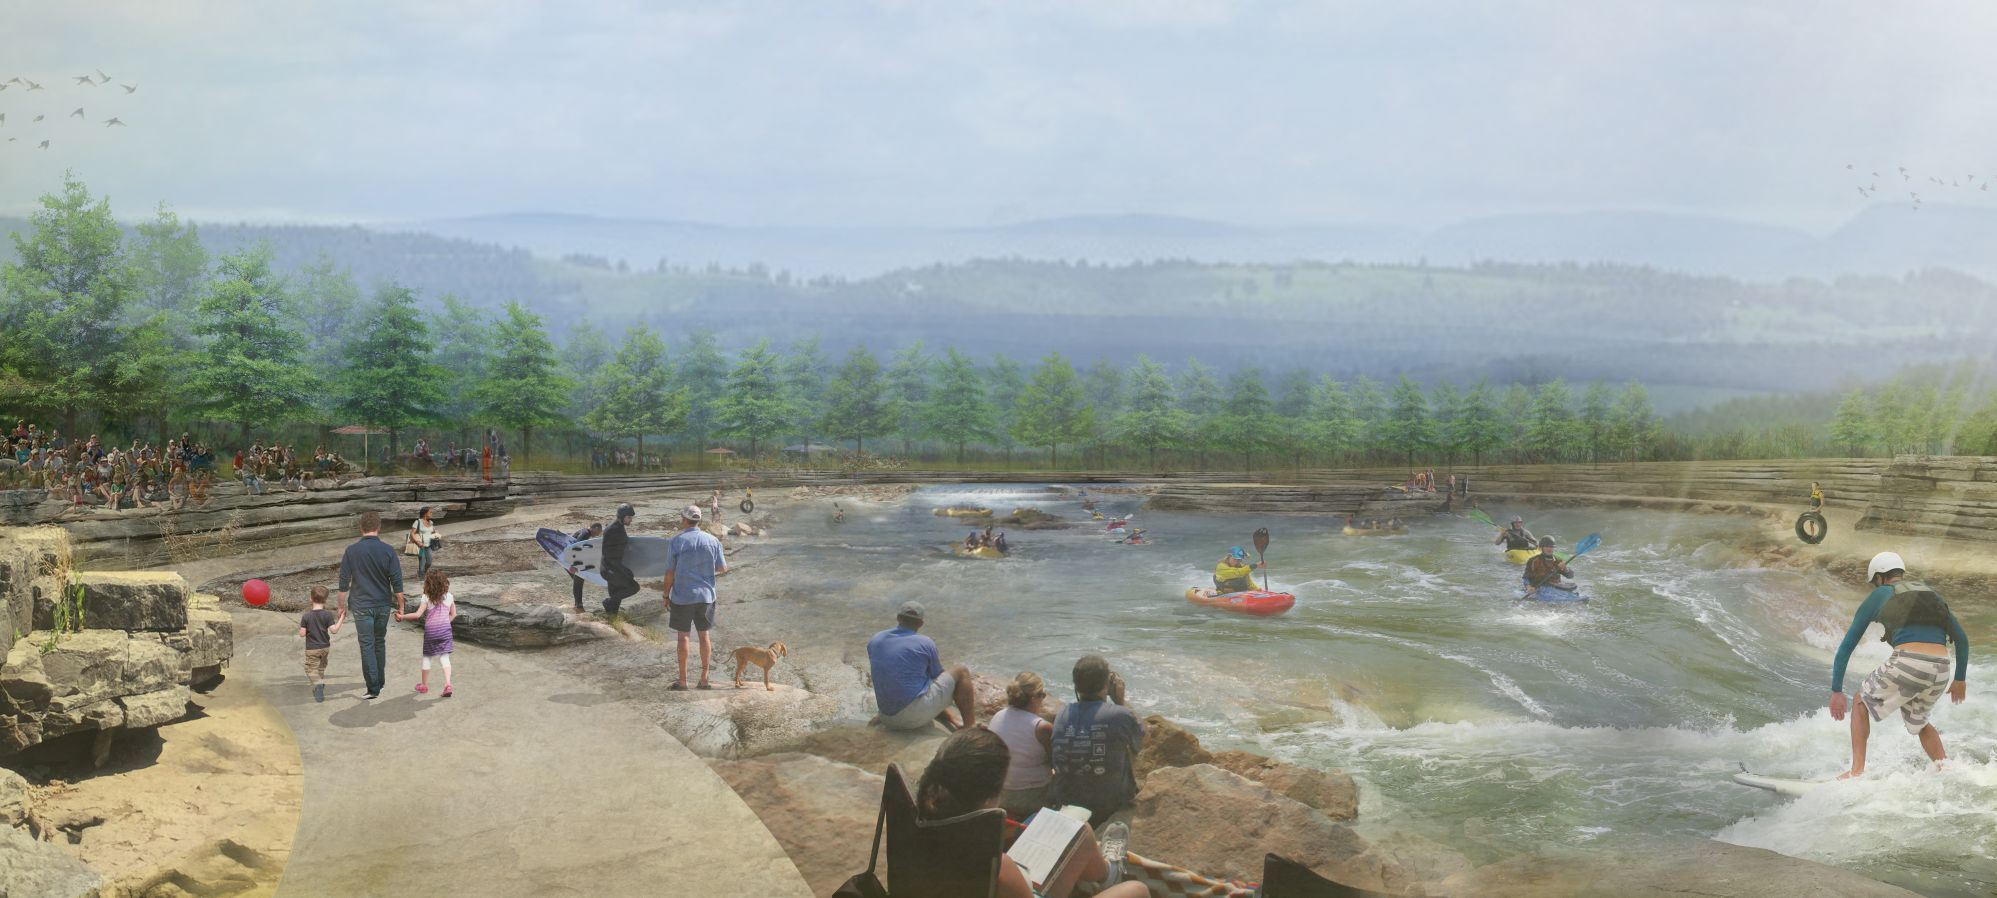 artistic rendering of the WOKA whitewater park- drawing of people watching kayaking with dam behind